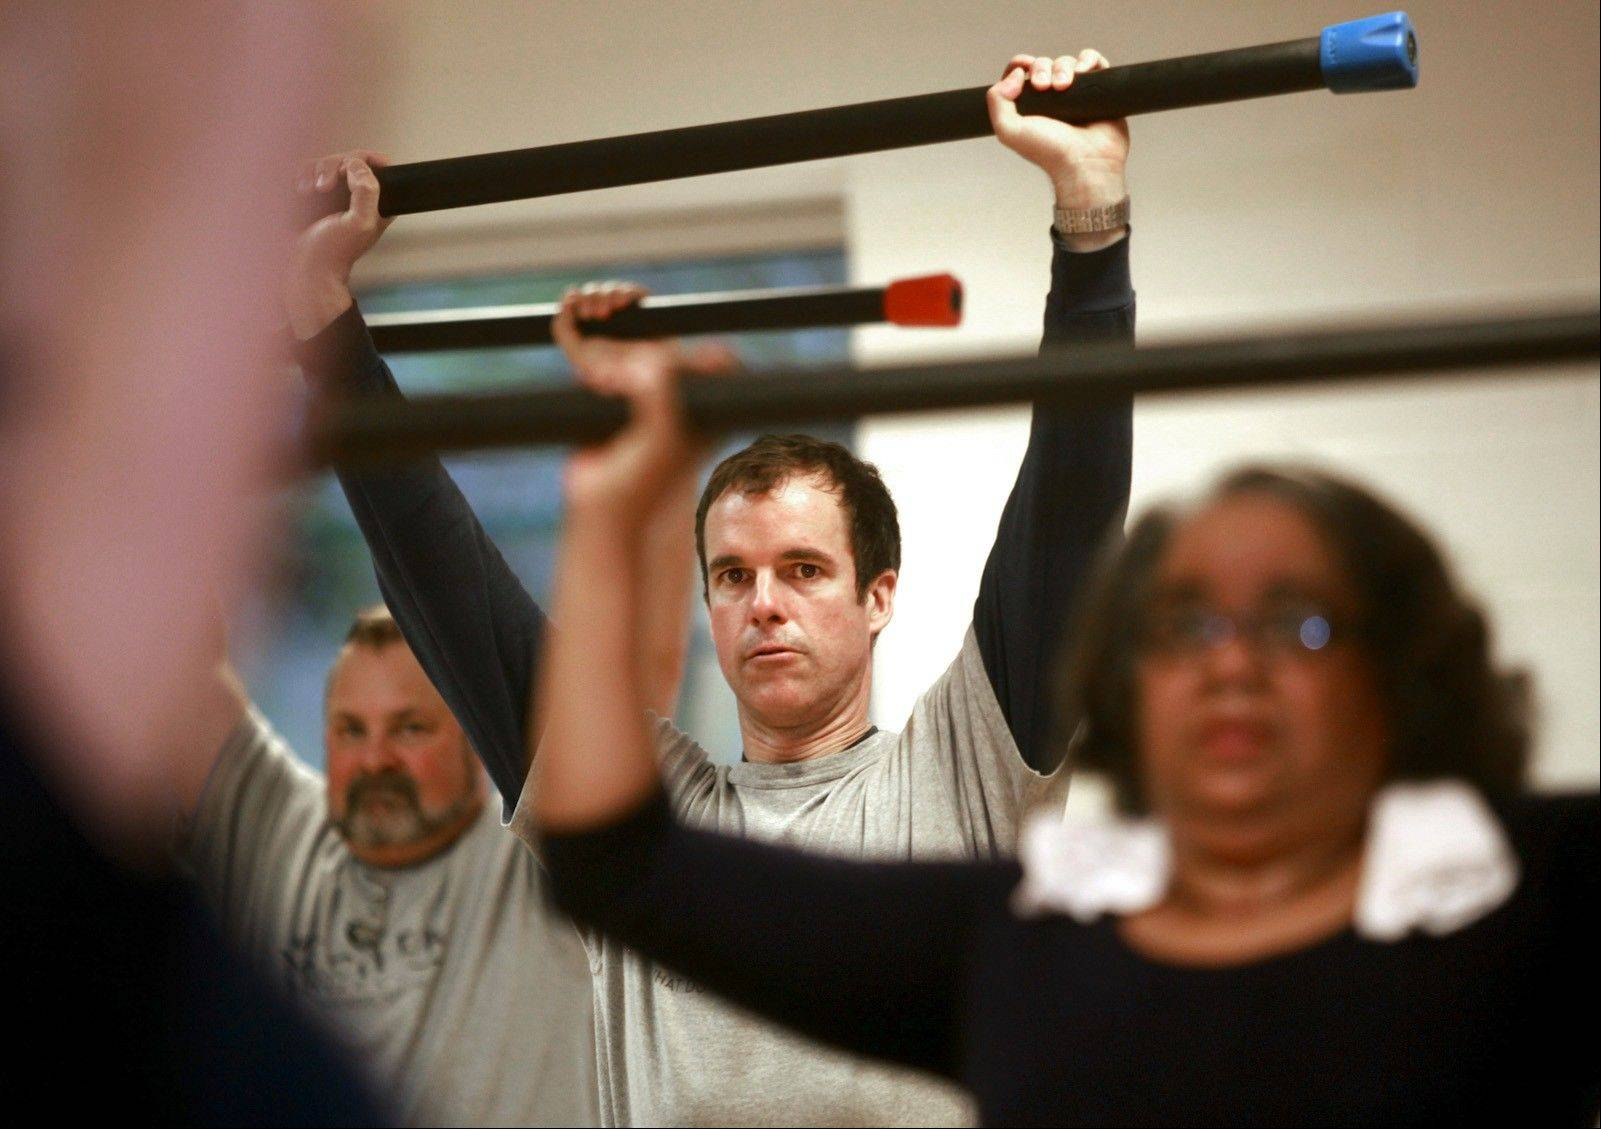 Dr. Ben Fischer, center, works out with patients at the YMCA in Raleigh, N.C. Fischer meets his patients at the gym, working out with men and women who have committed to a healthier lifestyle.